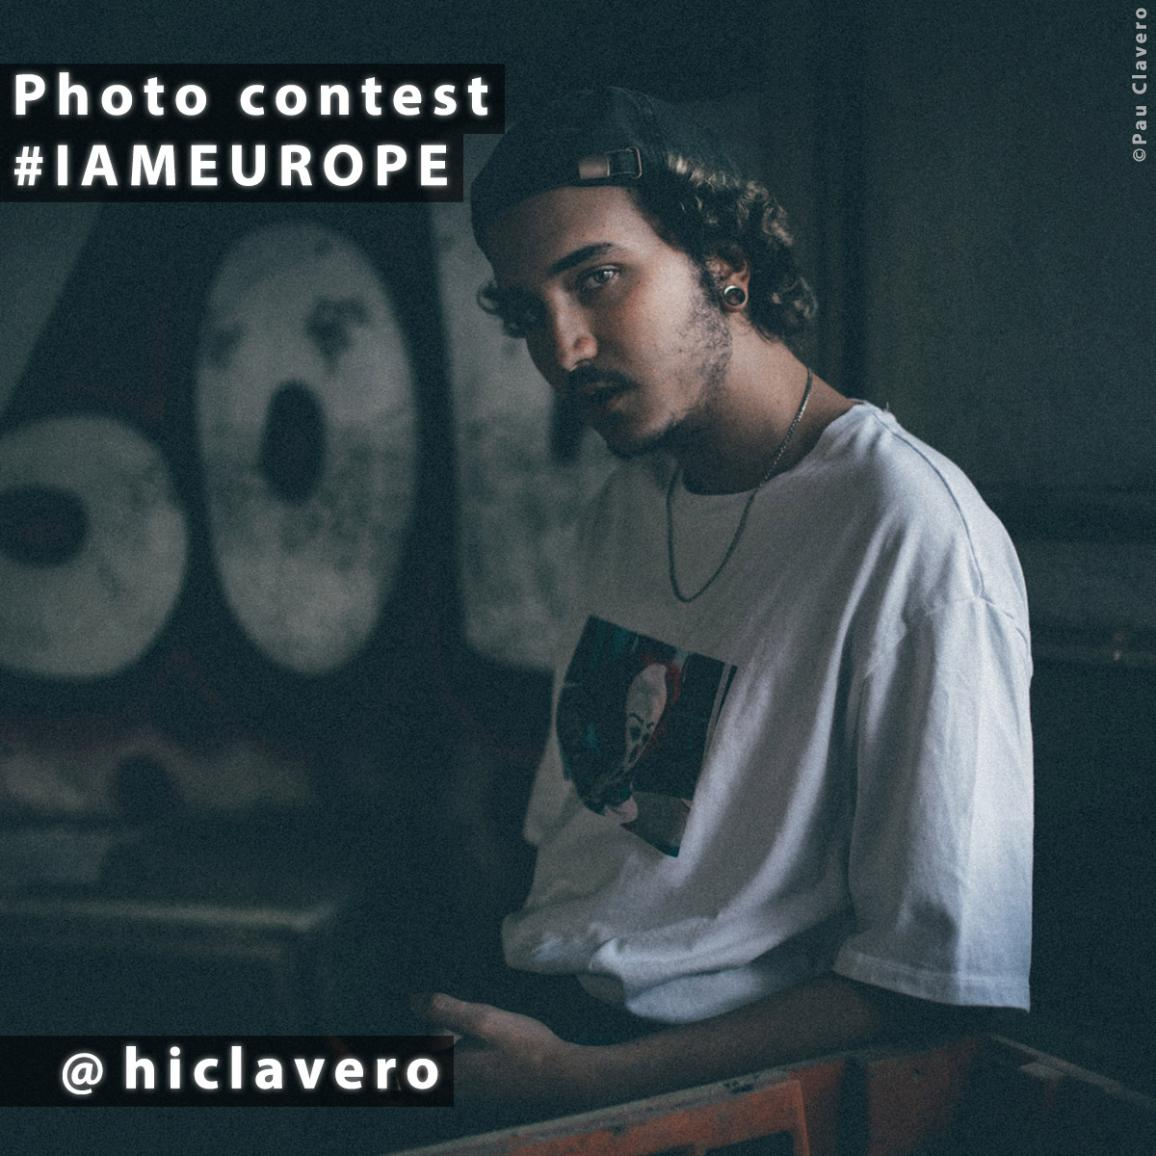 Special thanks to the Spanish photographer Pau Clavero (instagram @hiclavero) for your photo contest testimonial